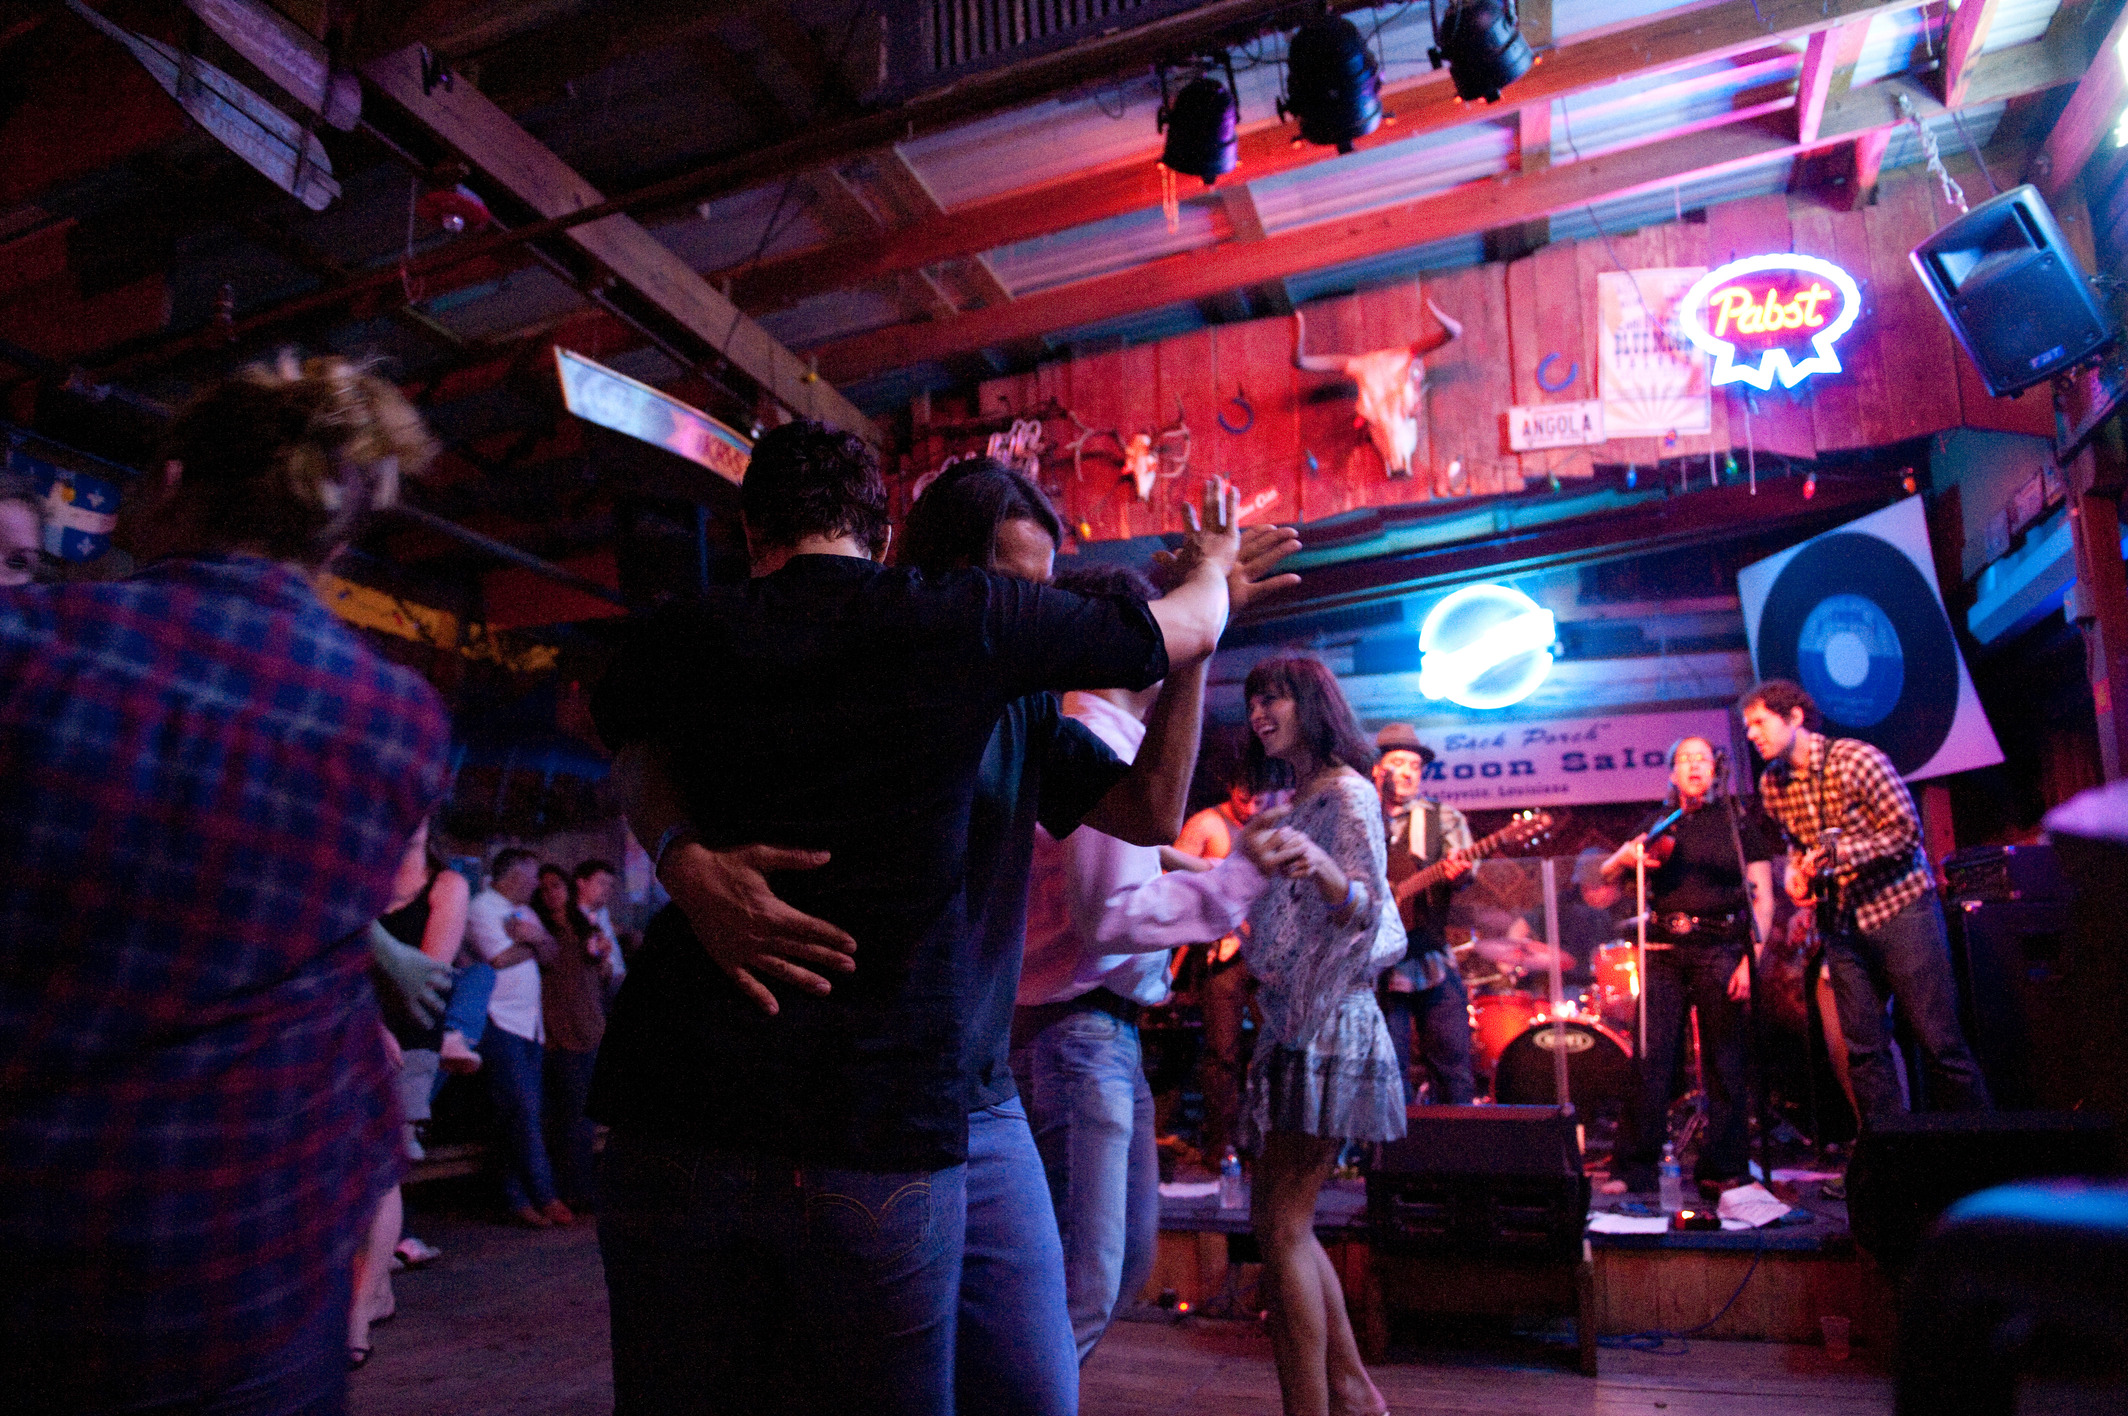 Blue Moon Saloon Live Music and Dancing